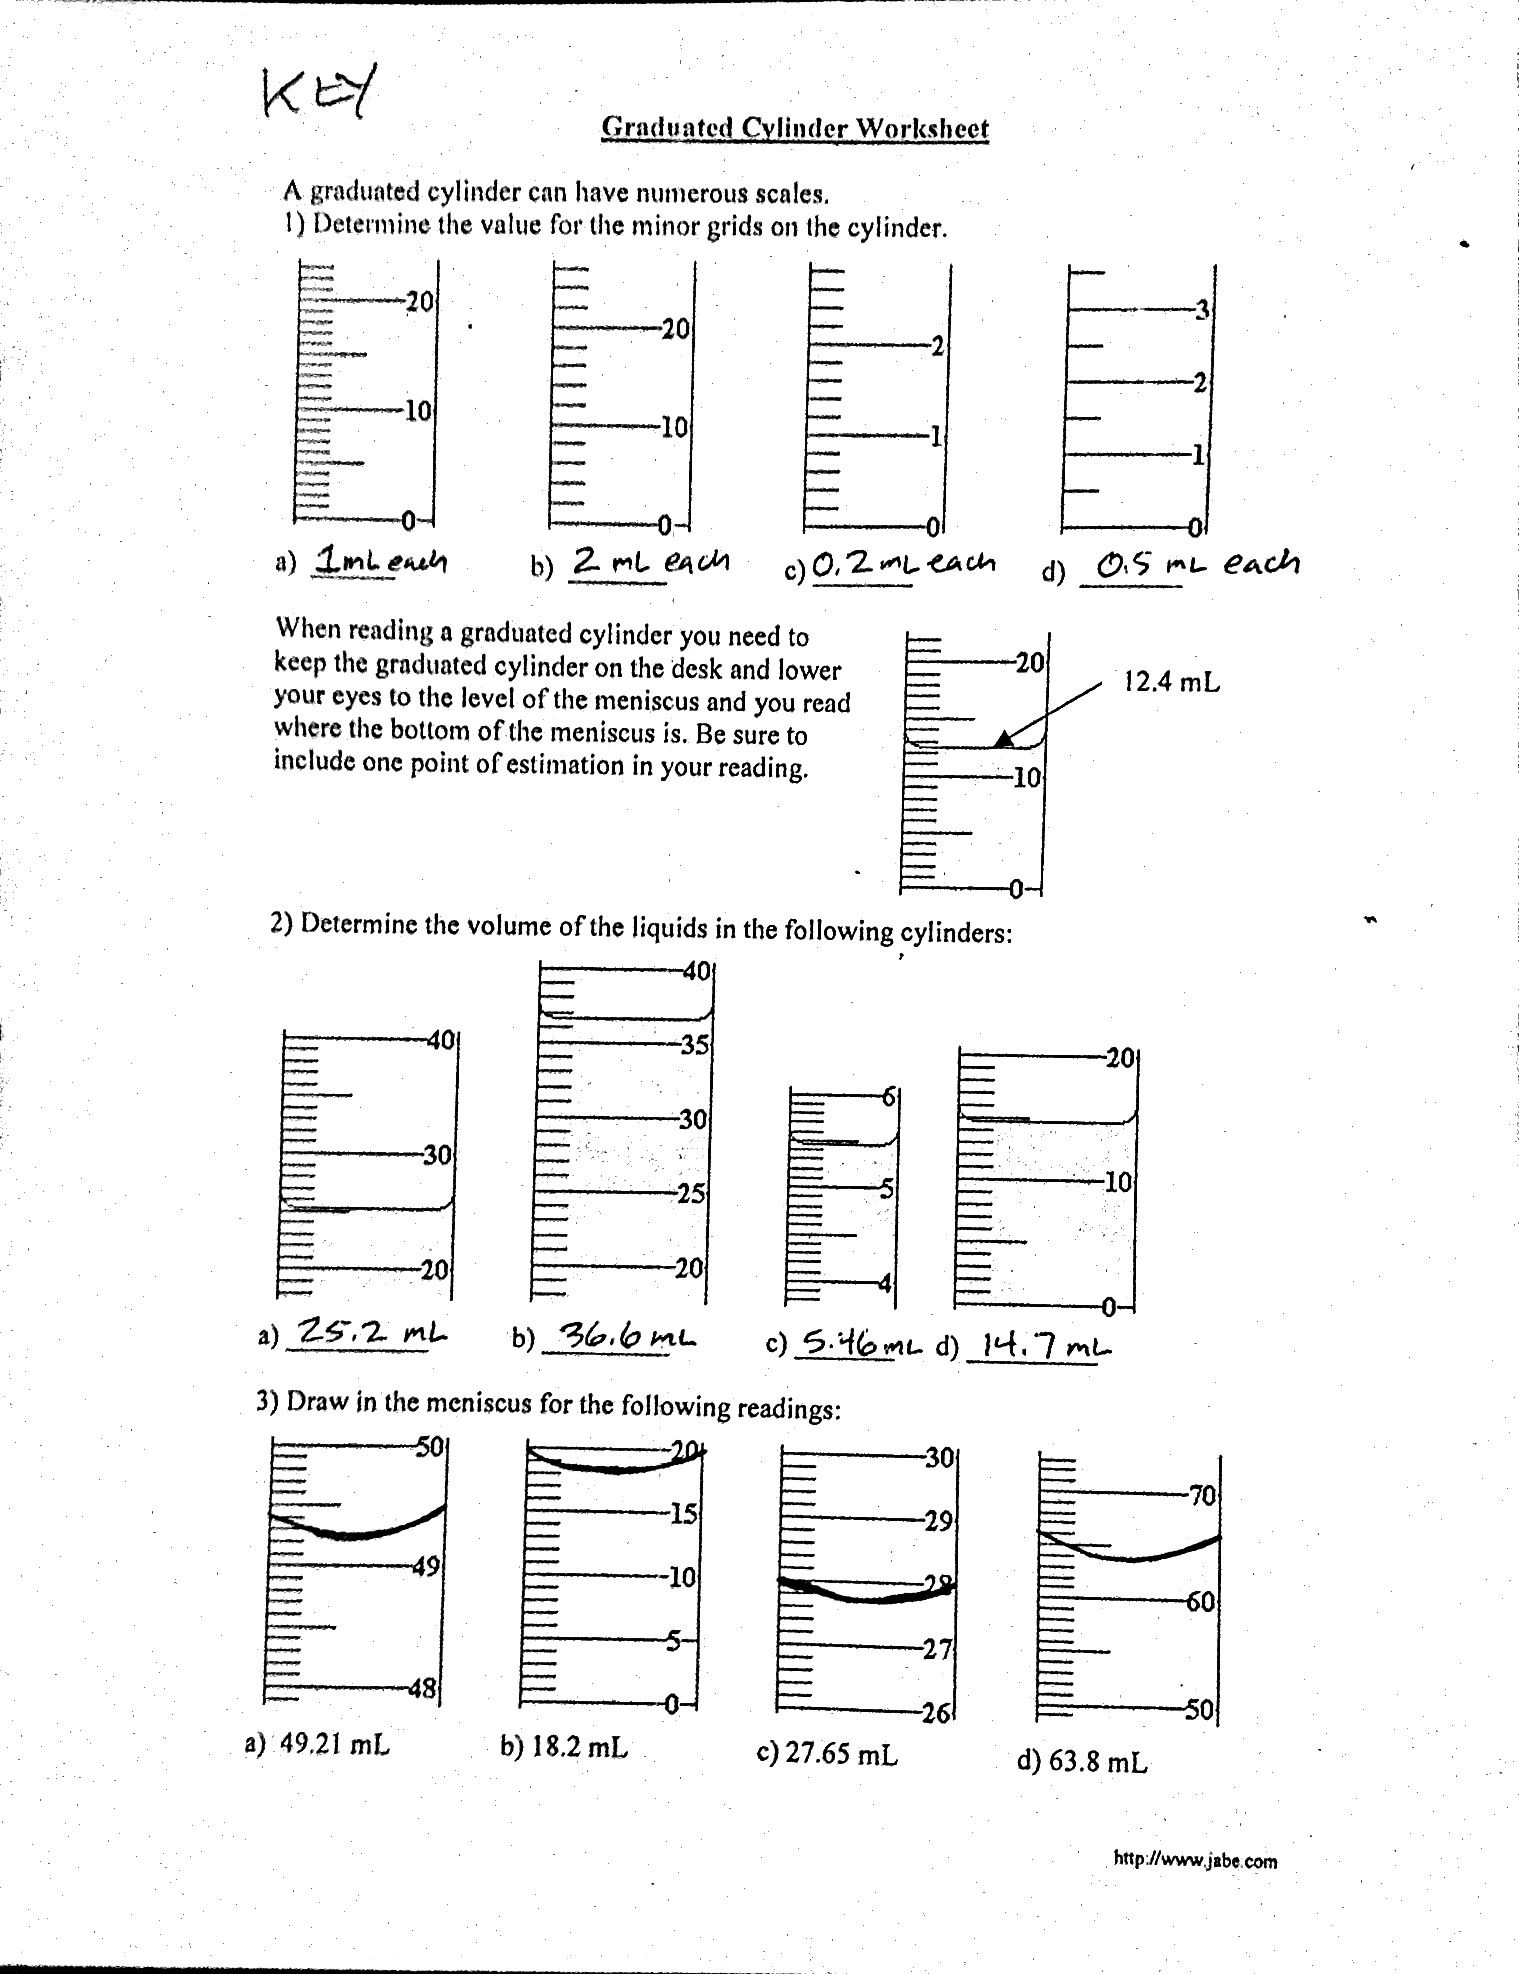 Worksheets Measuring Liquid Volume Worksheet measurement mass and volume mr gibbs science 20 key graduated cylinder worksheet